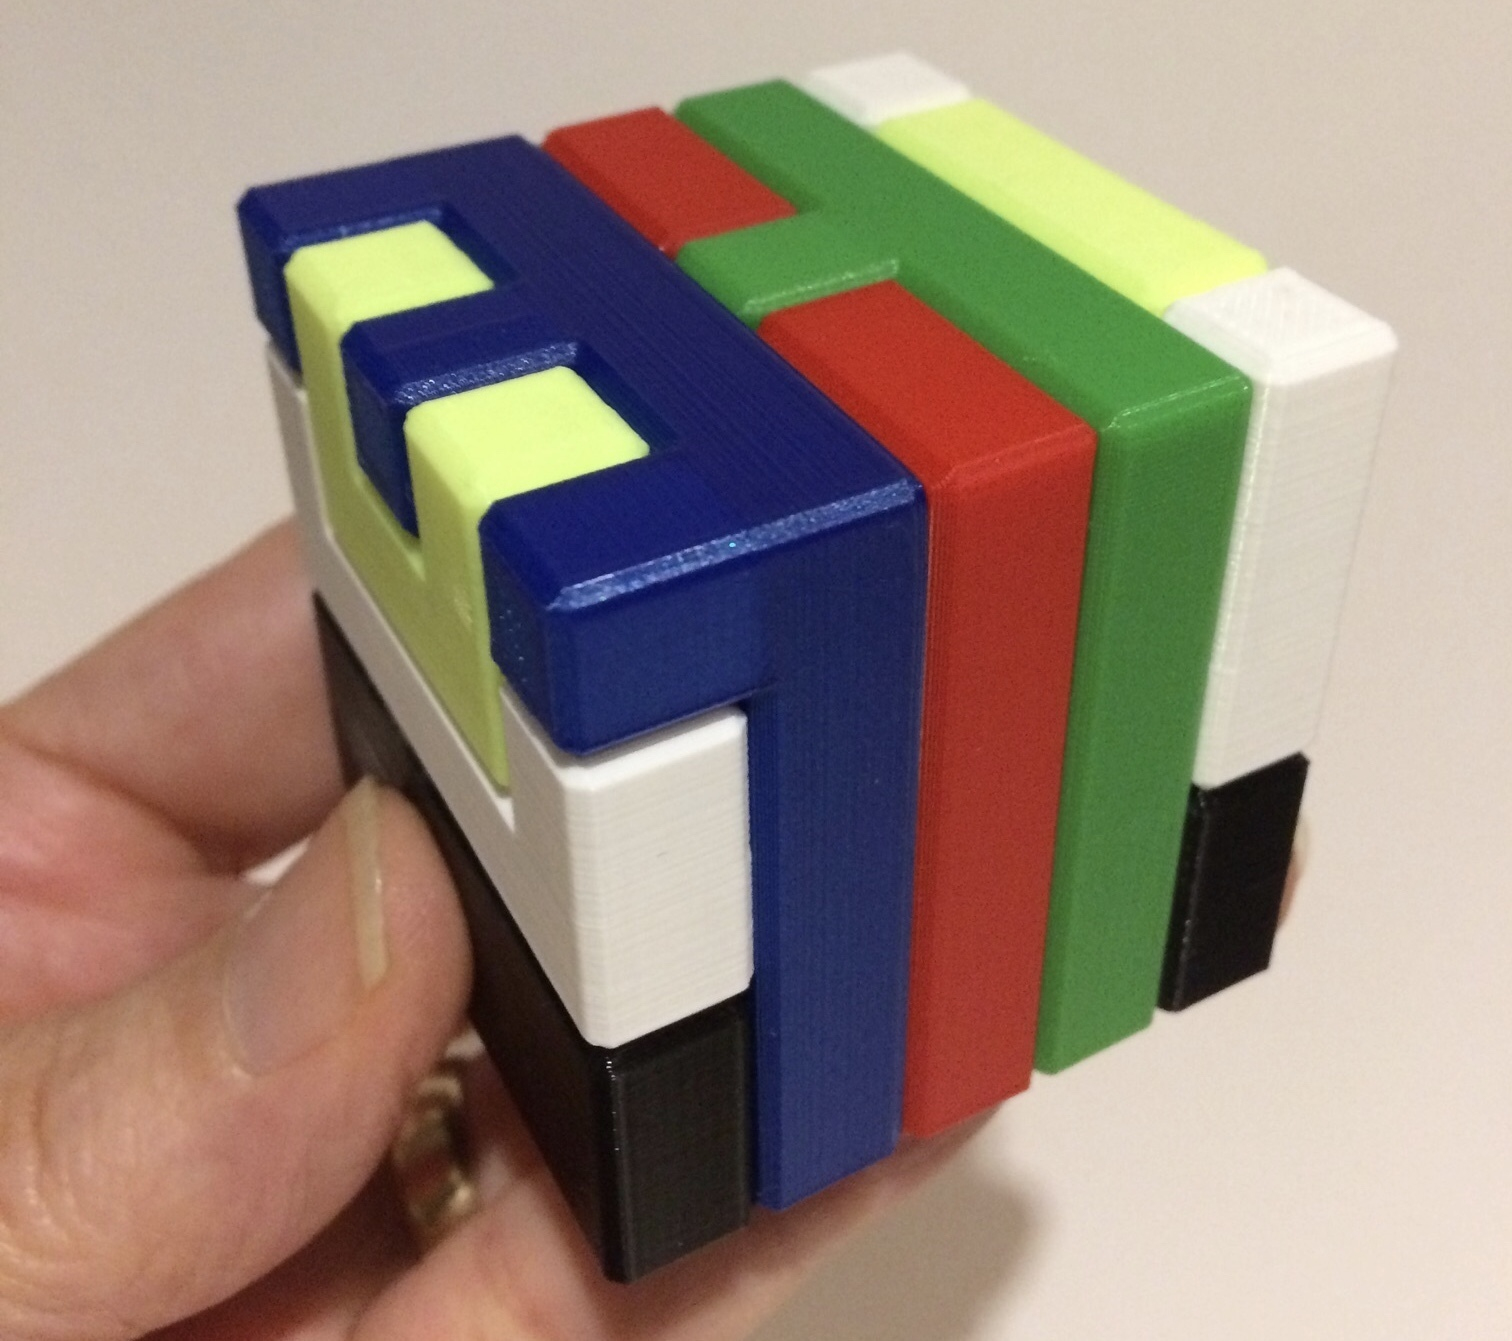 3D Printed Printable Interlocking Puzzle #4 - Level 11Richgain - Printable Burr Puzzle